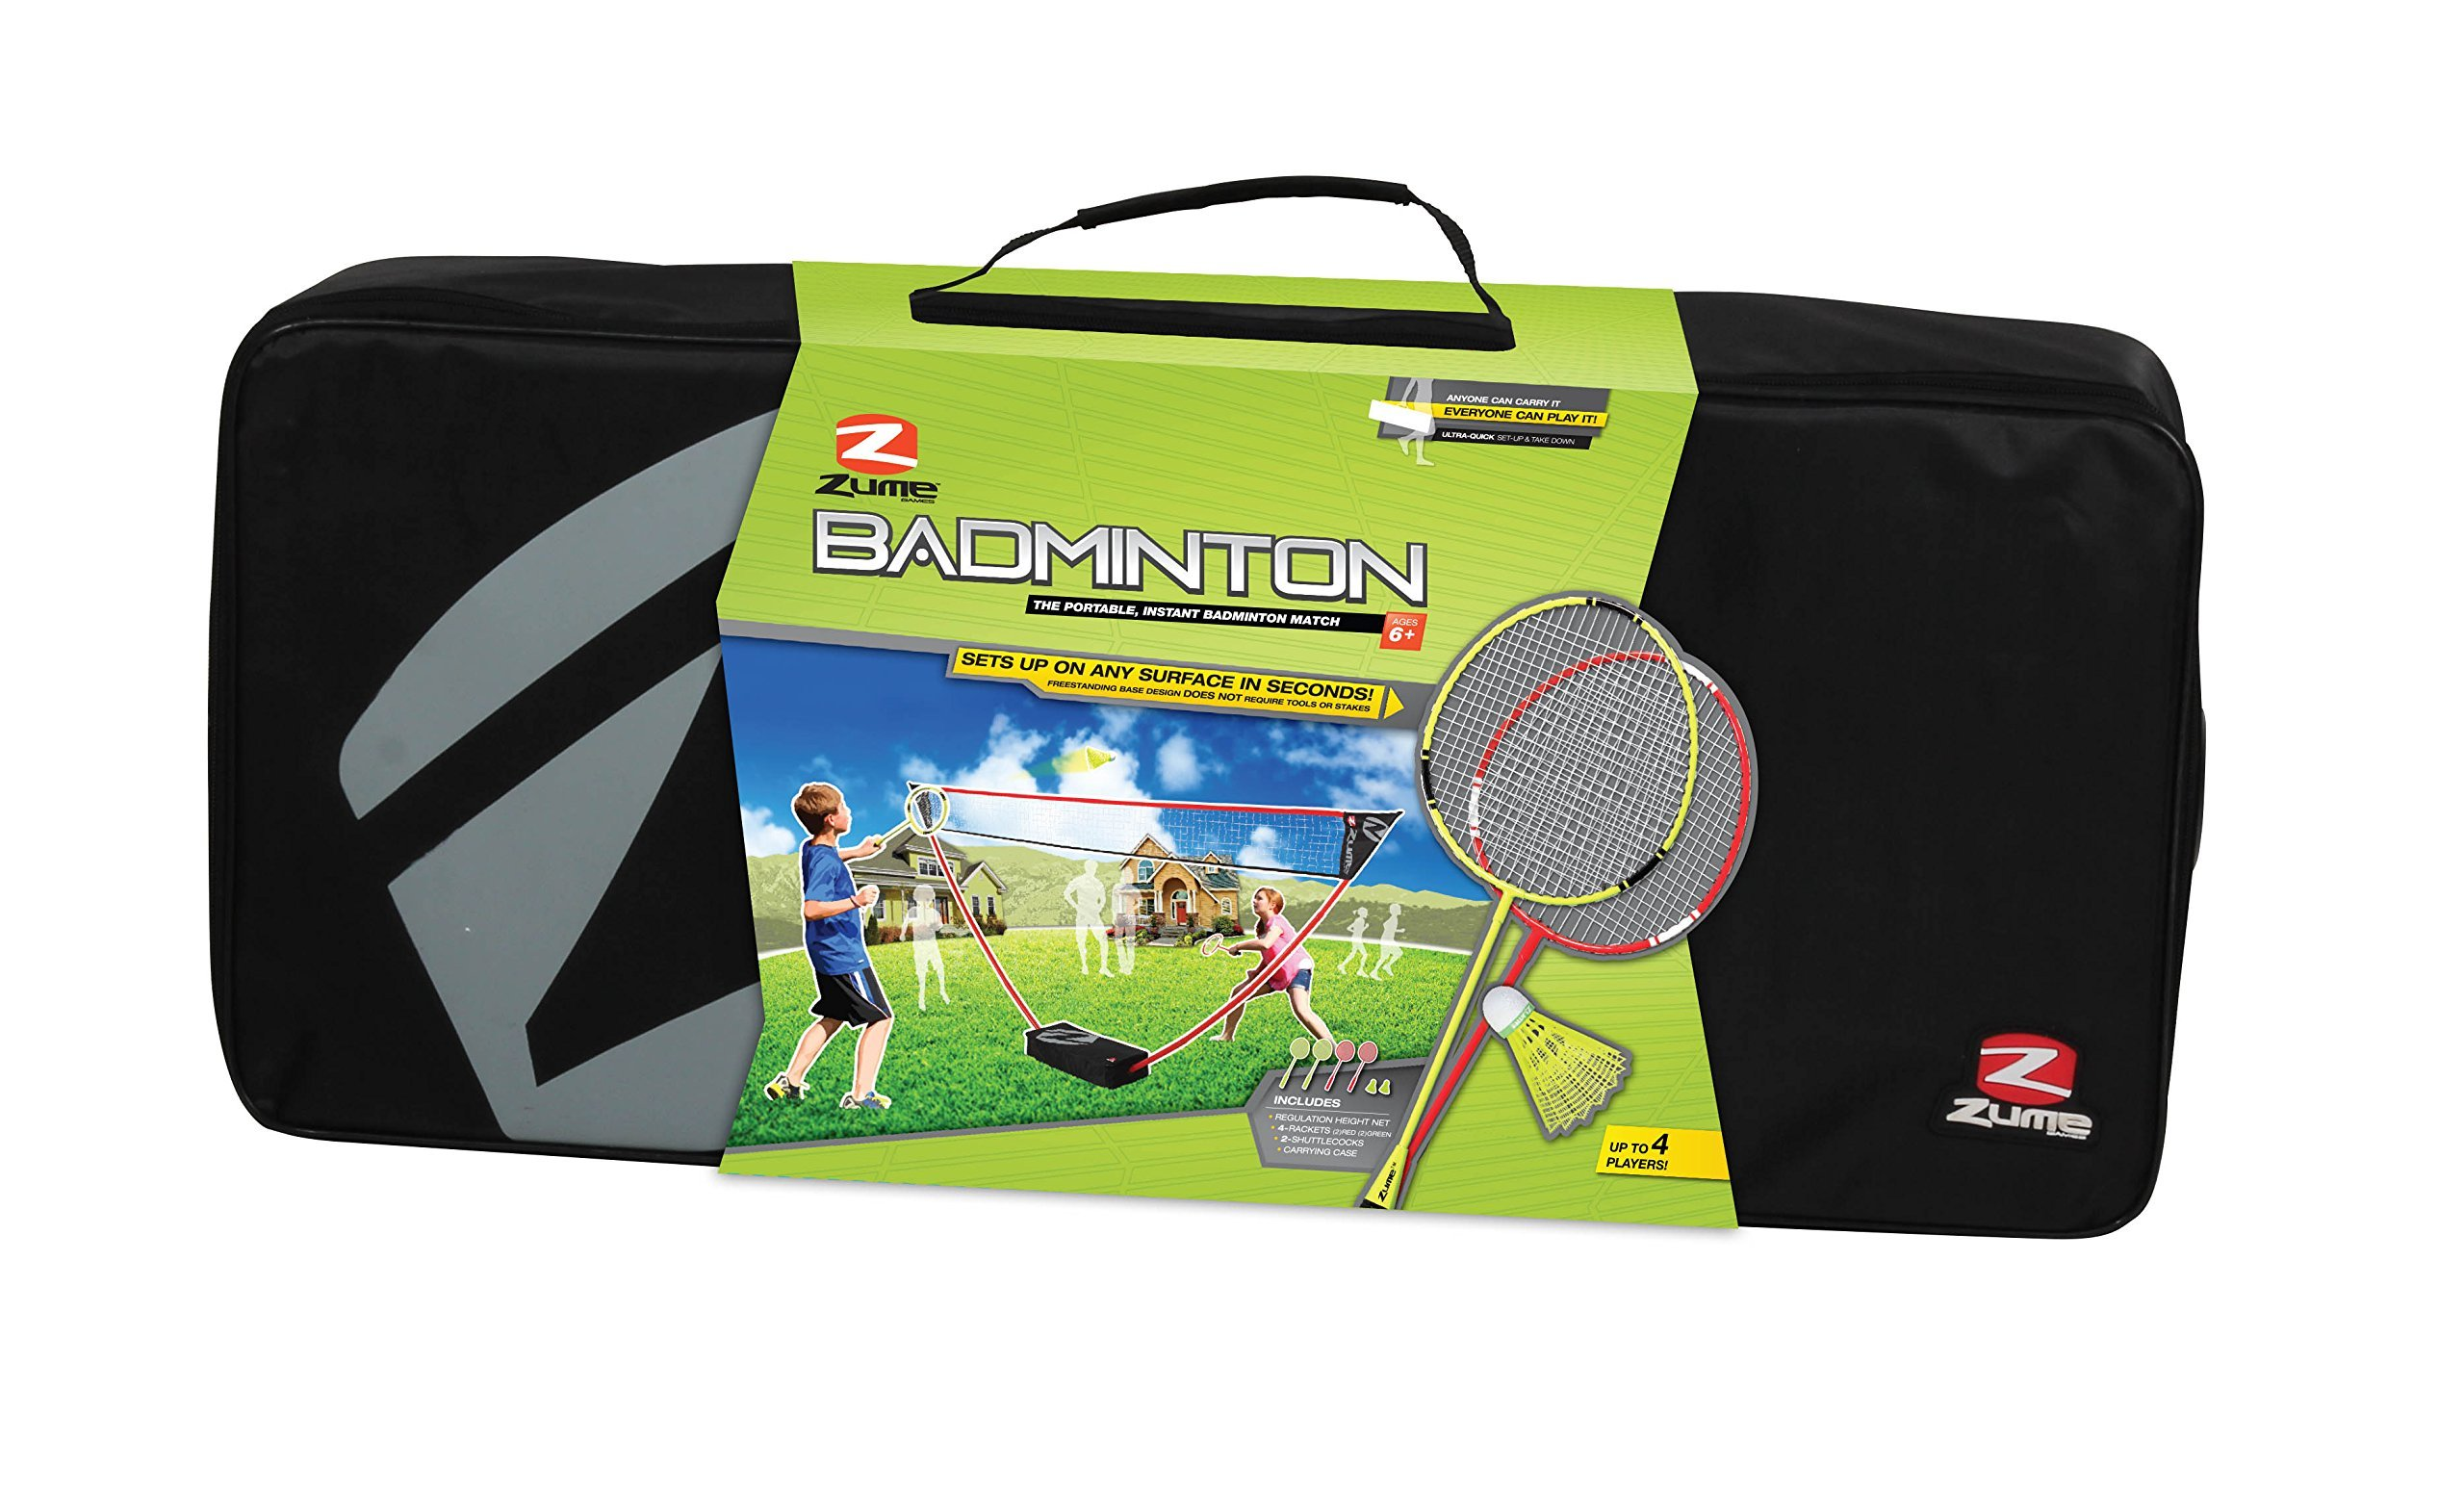 Zume Games Portable Badminton Set with Freestanding Base - Sets Up on Any Surface in Seconds - No Tools or Stakes Required (Renewed) by Zume (Image #2)